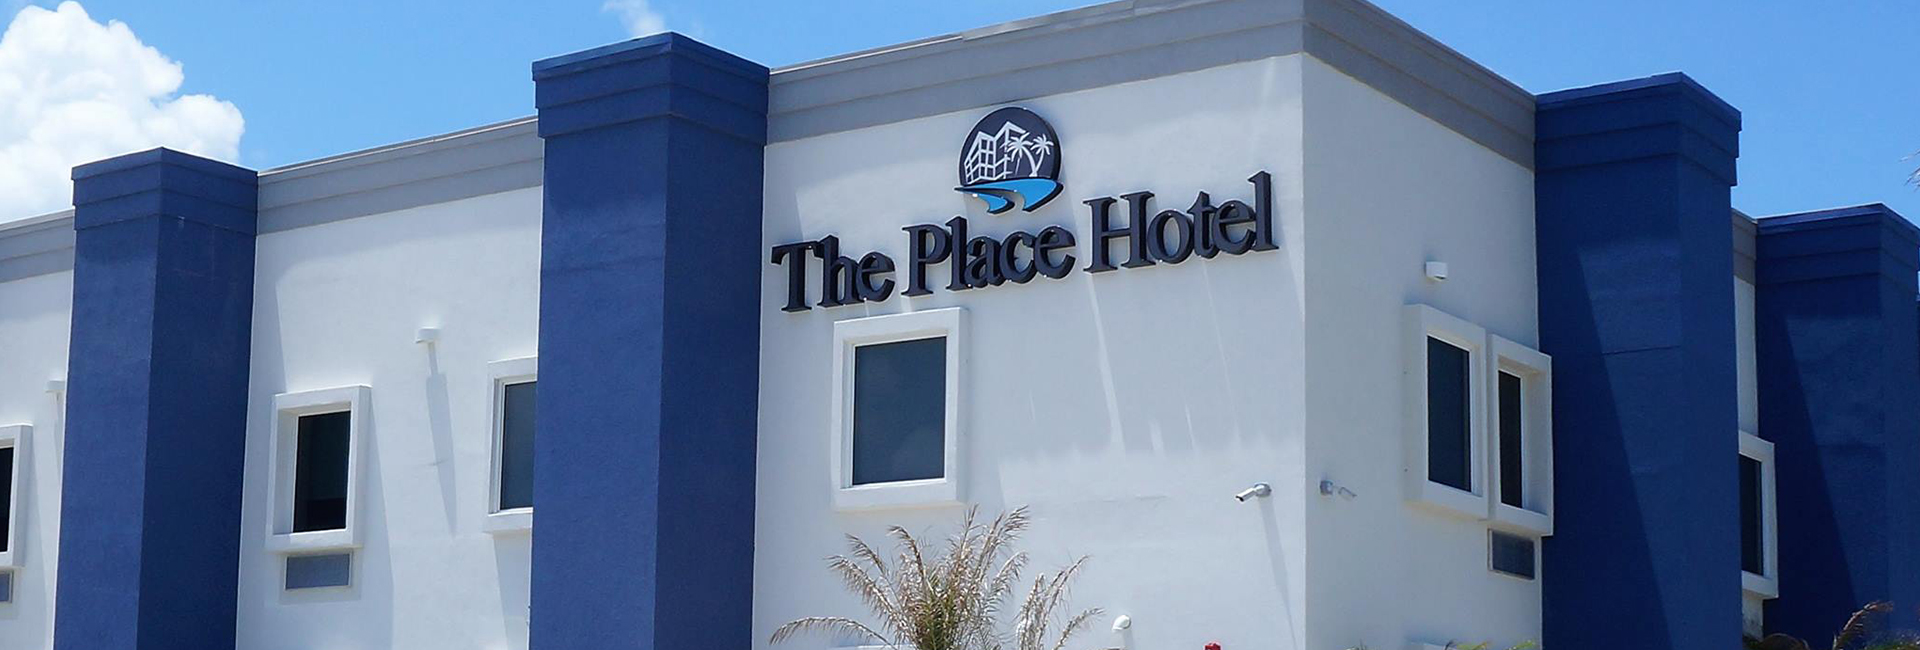 THE PLACE HOTEL PORT ARANSAS, TEXAS